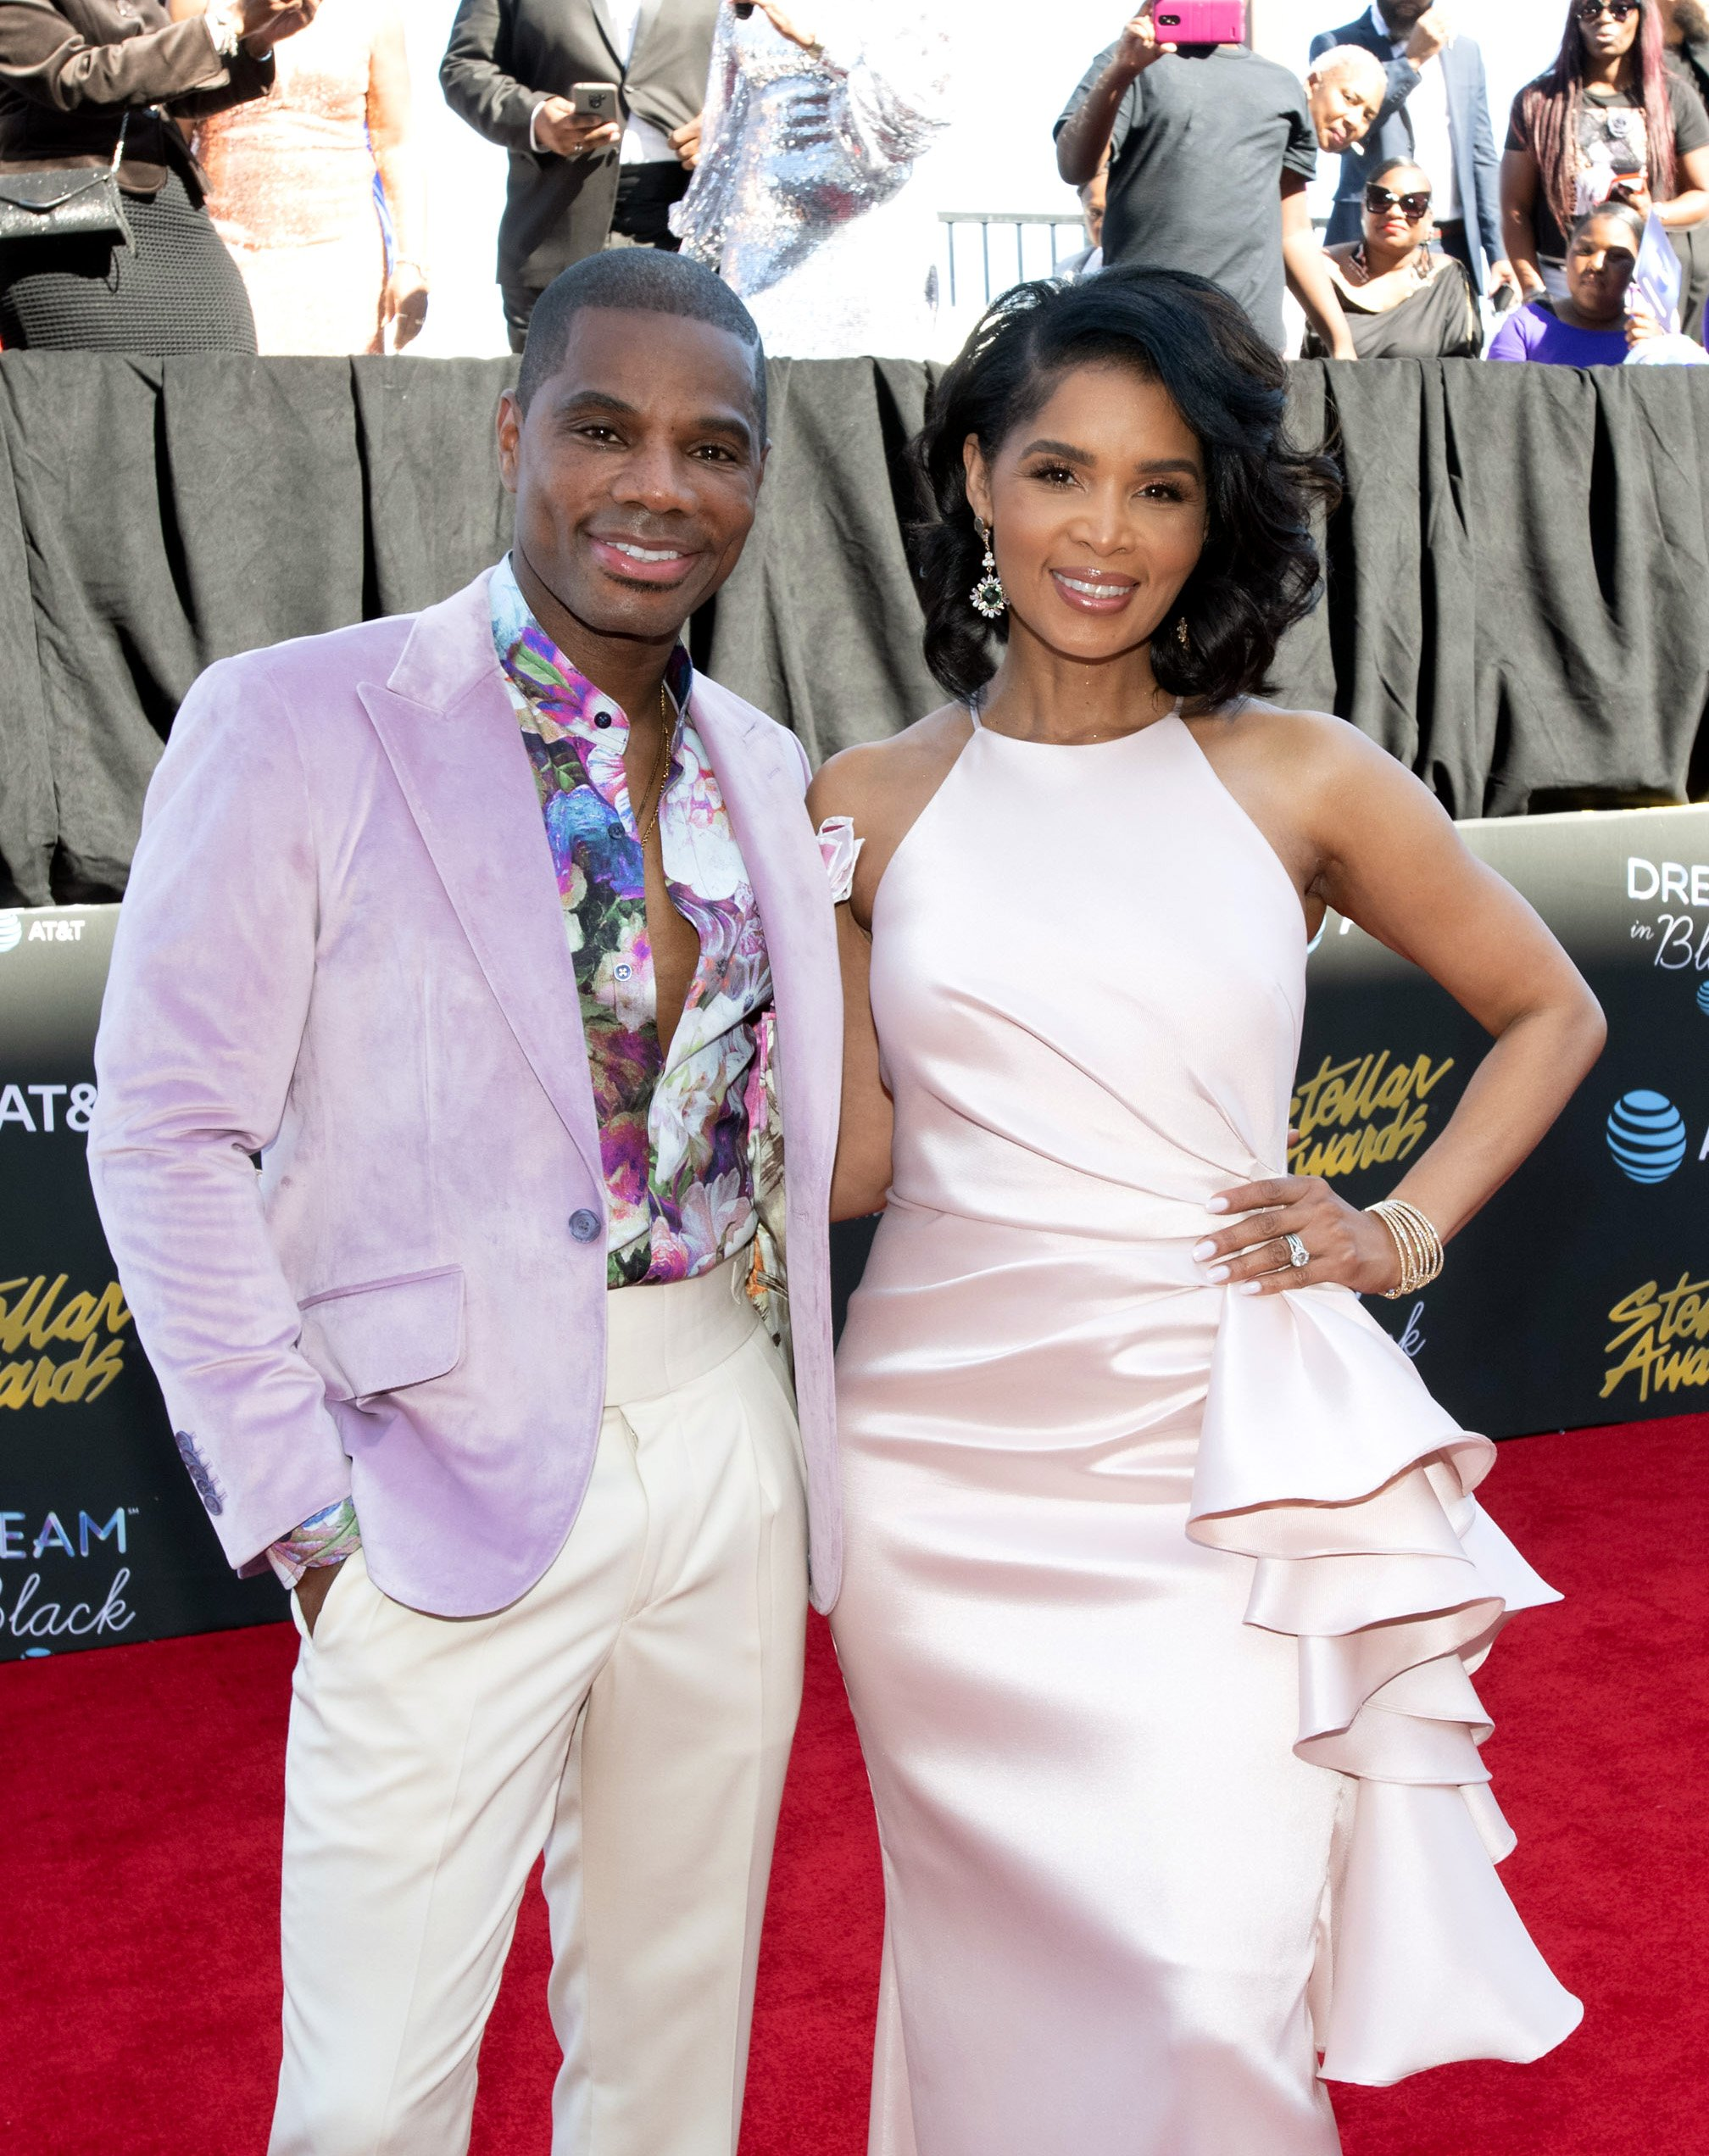 Kirk Franklin and Tammy Collins attend the 34th annual Stellar Gospel Music Awards on March 29, 2019. | Photo: Getty Images